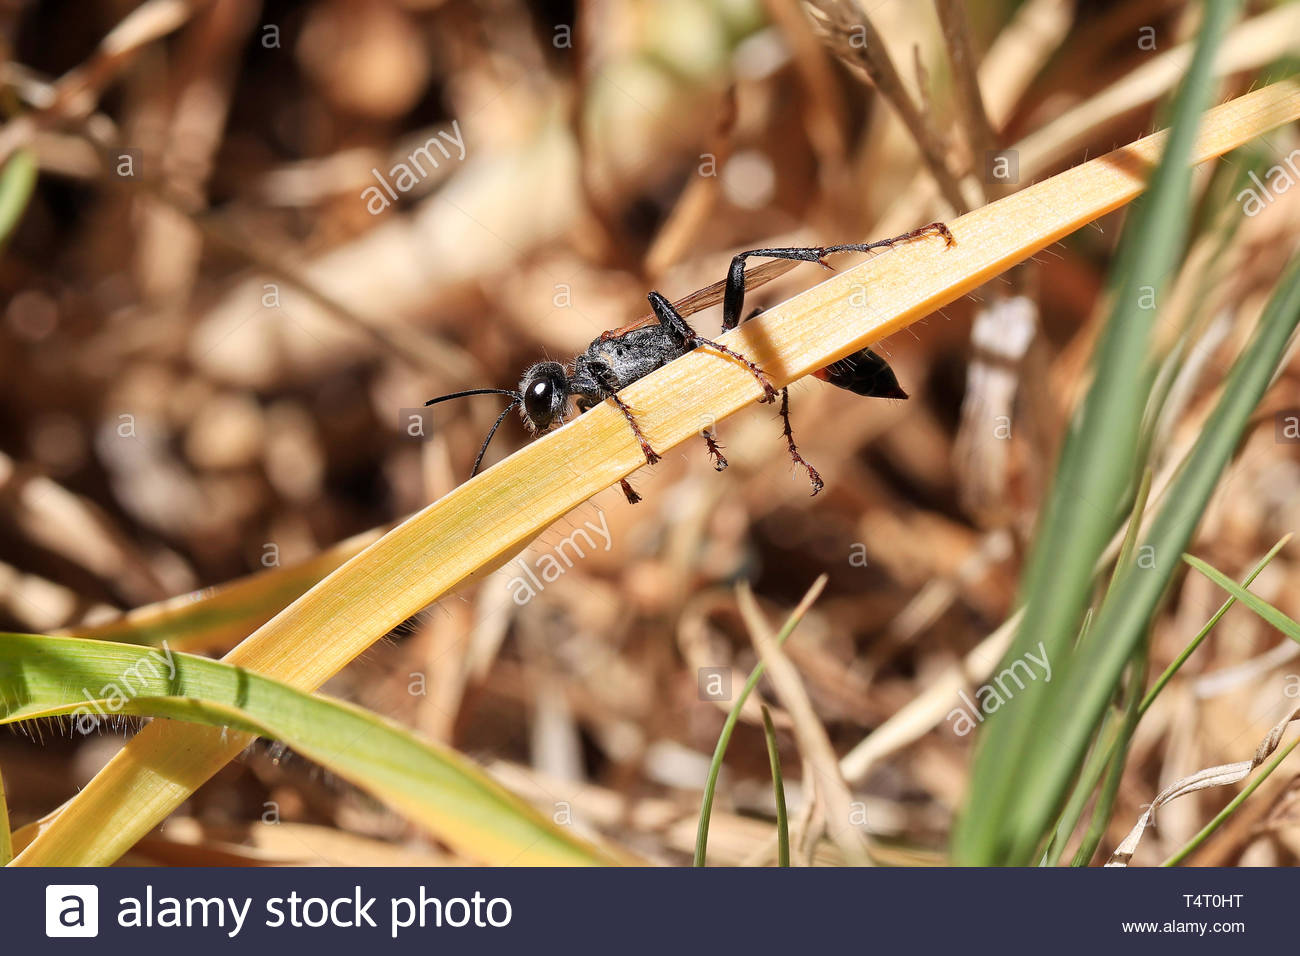 Close up of a baby wasp resting on a piece of yellow grass. - Stock Image